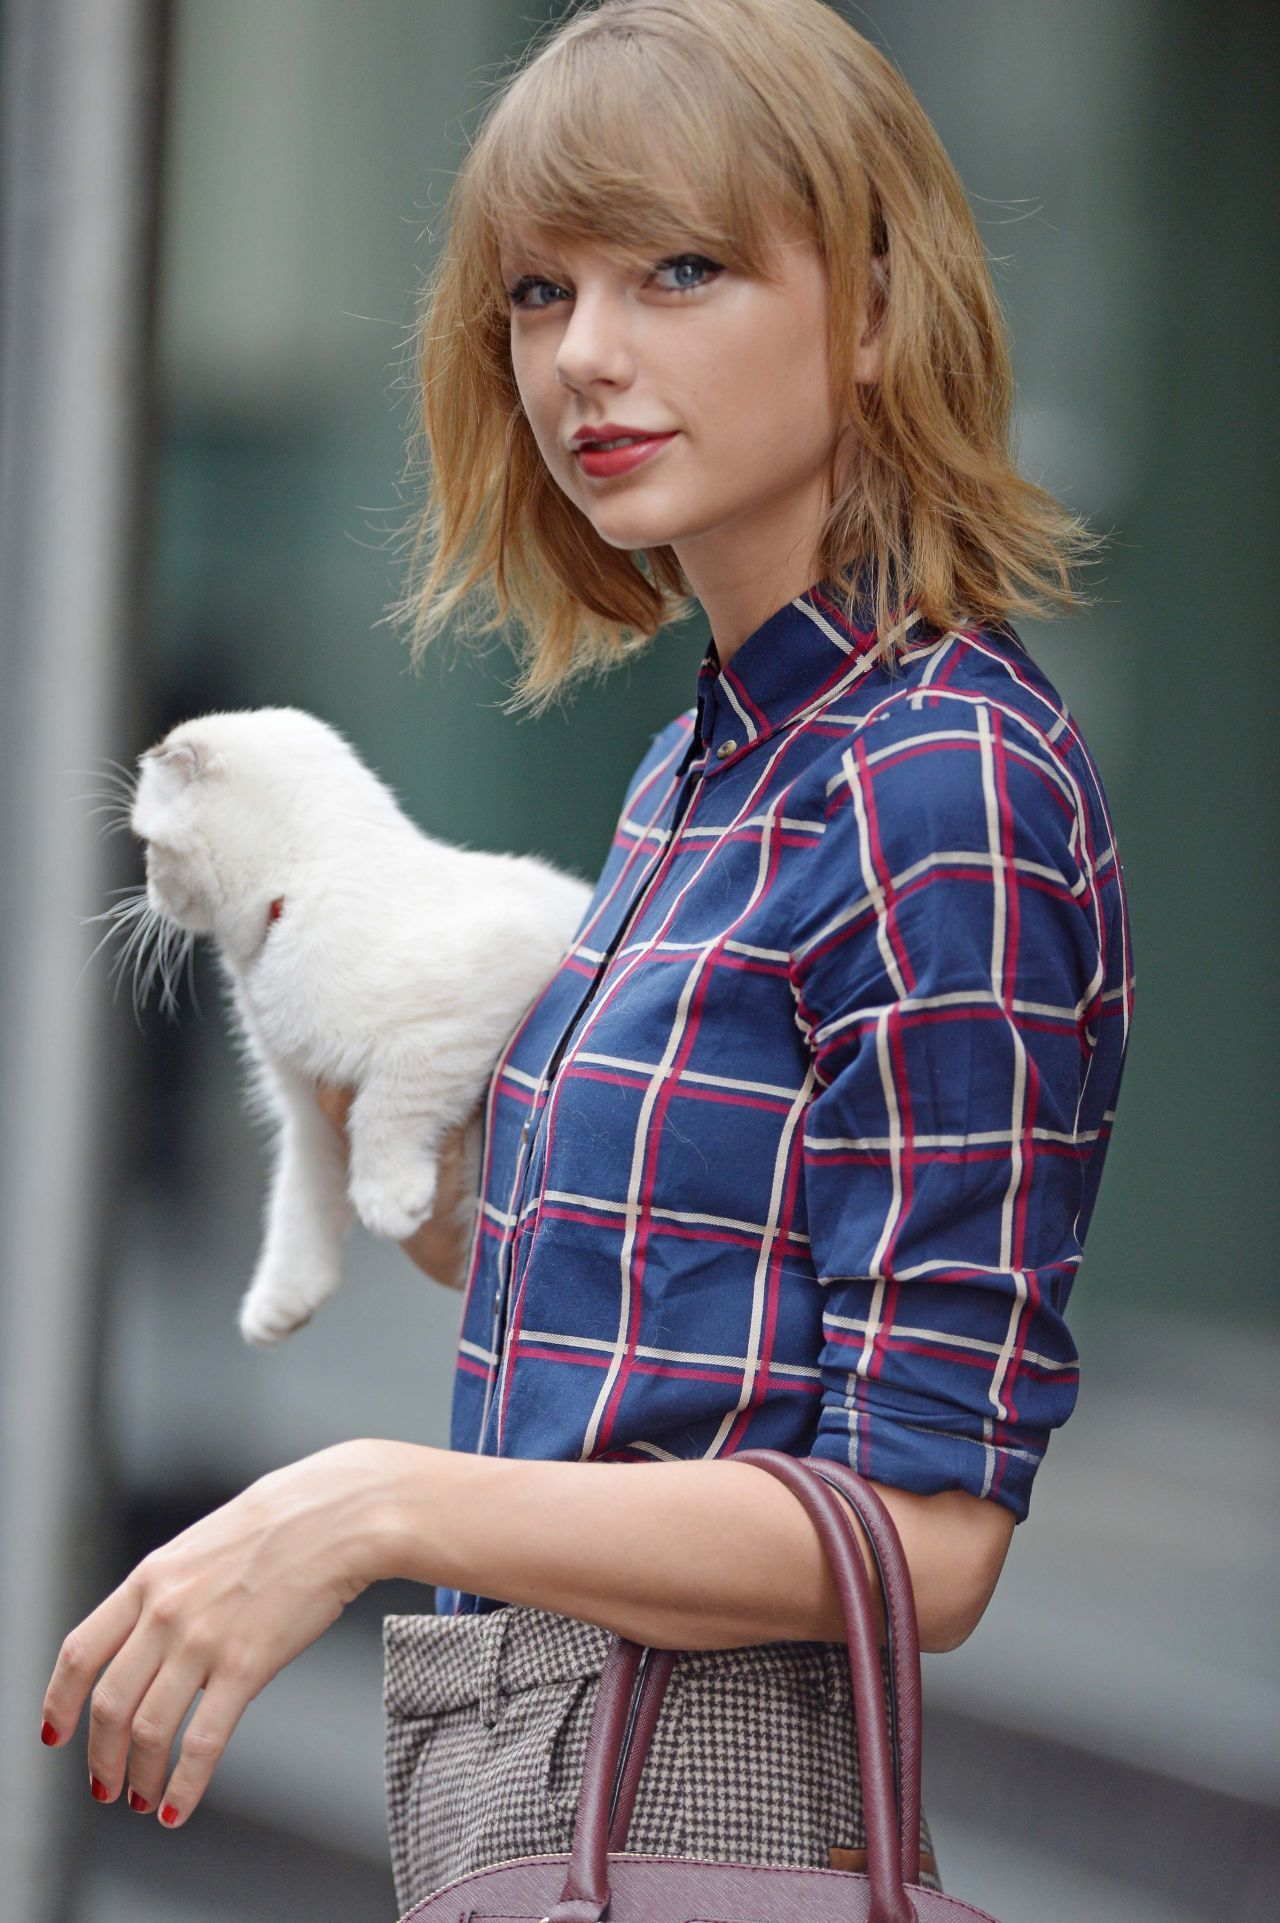 taylor swift, the pop singer behind bad blood and into the woods has